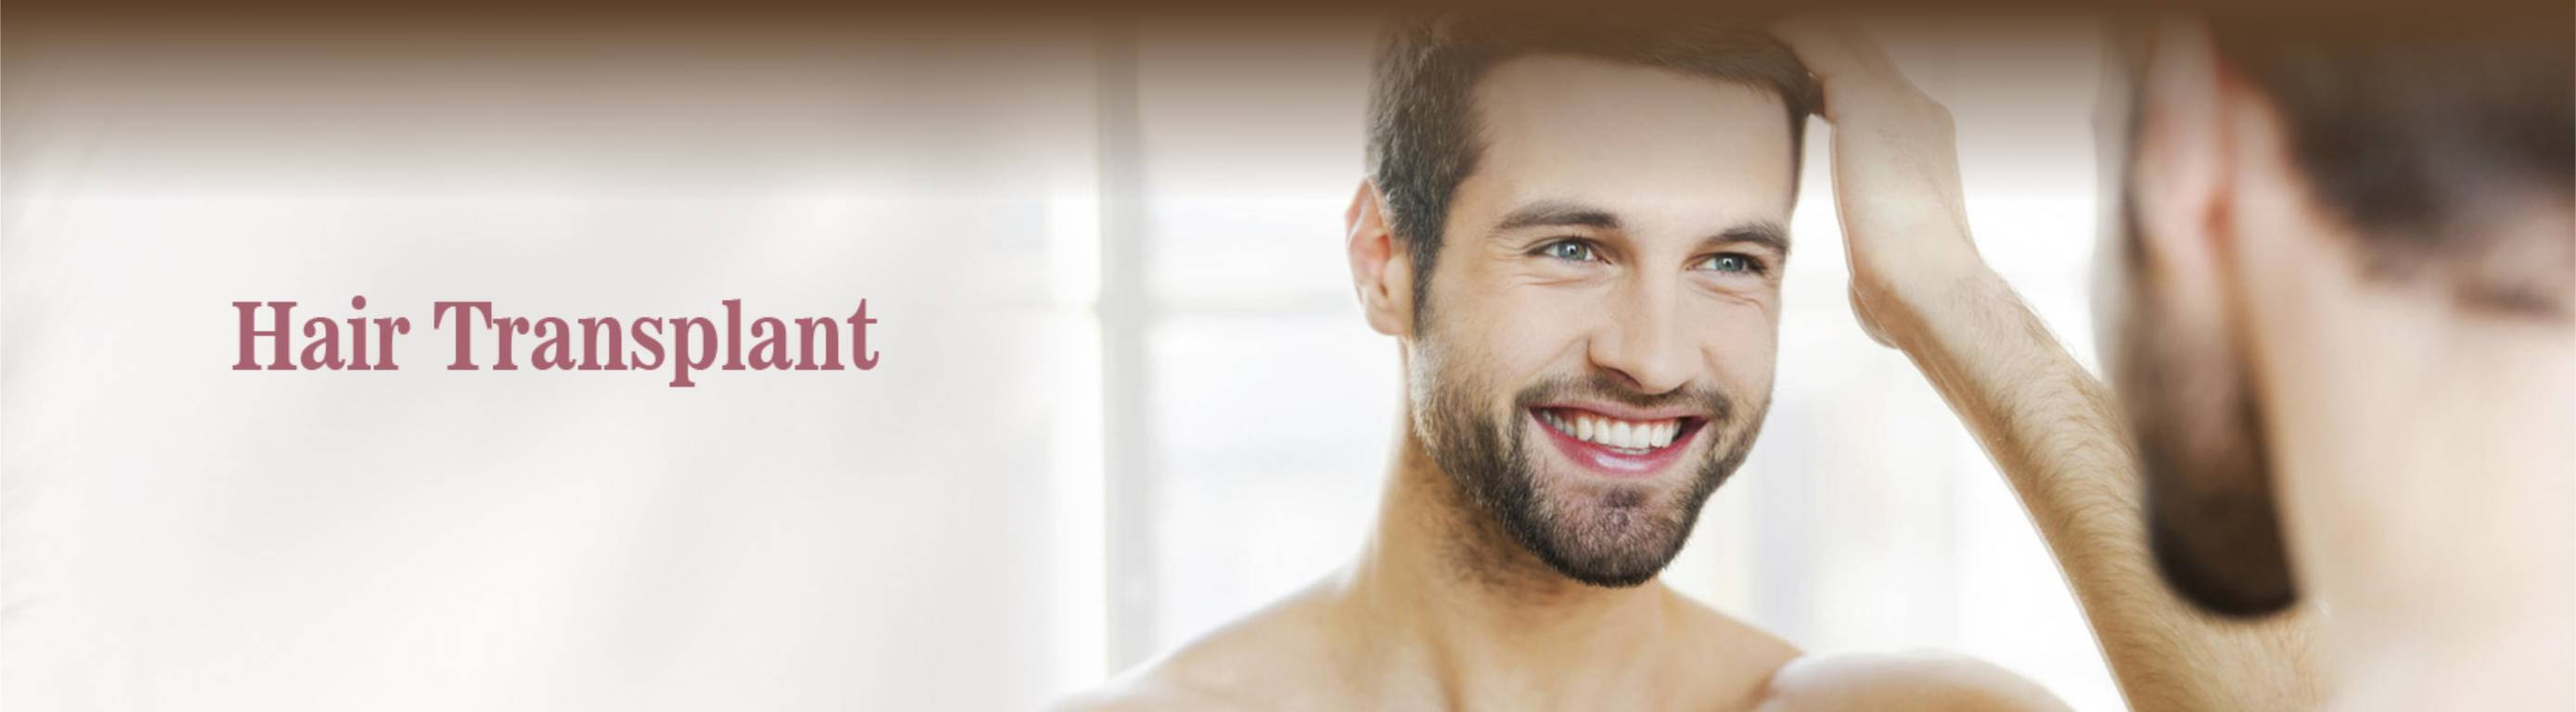 FOUR MYTHS ABOUT HAIR TRANSPLANT SURGERY